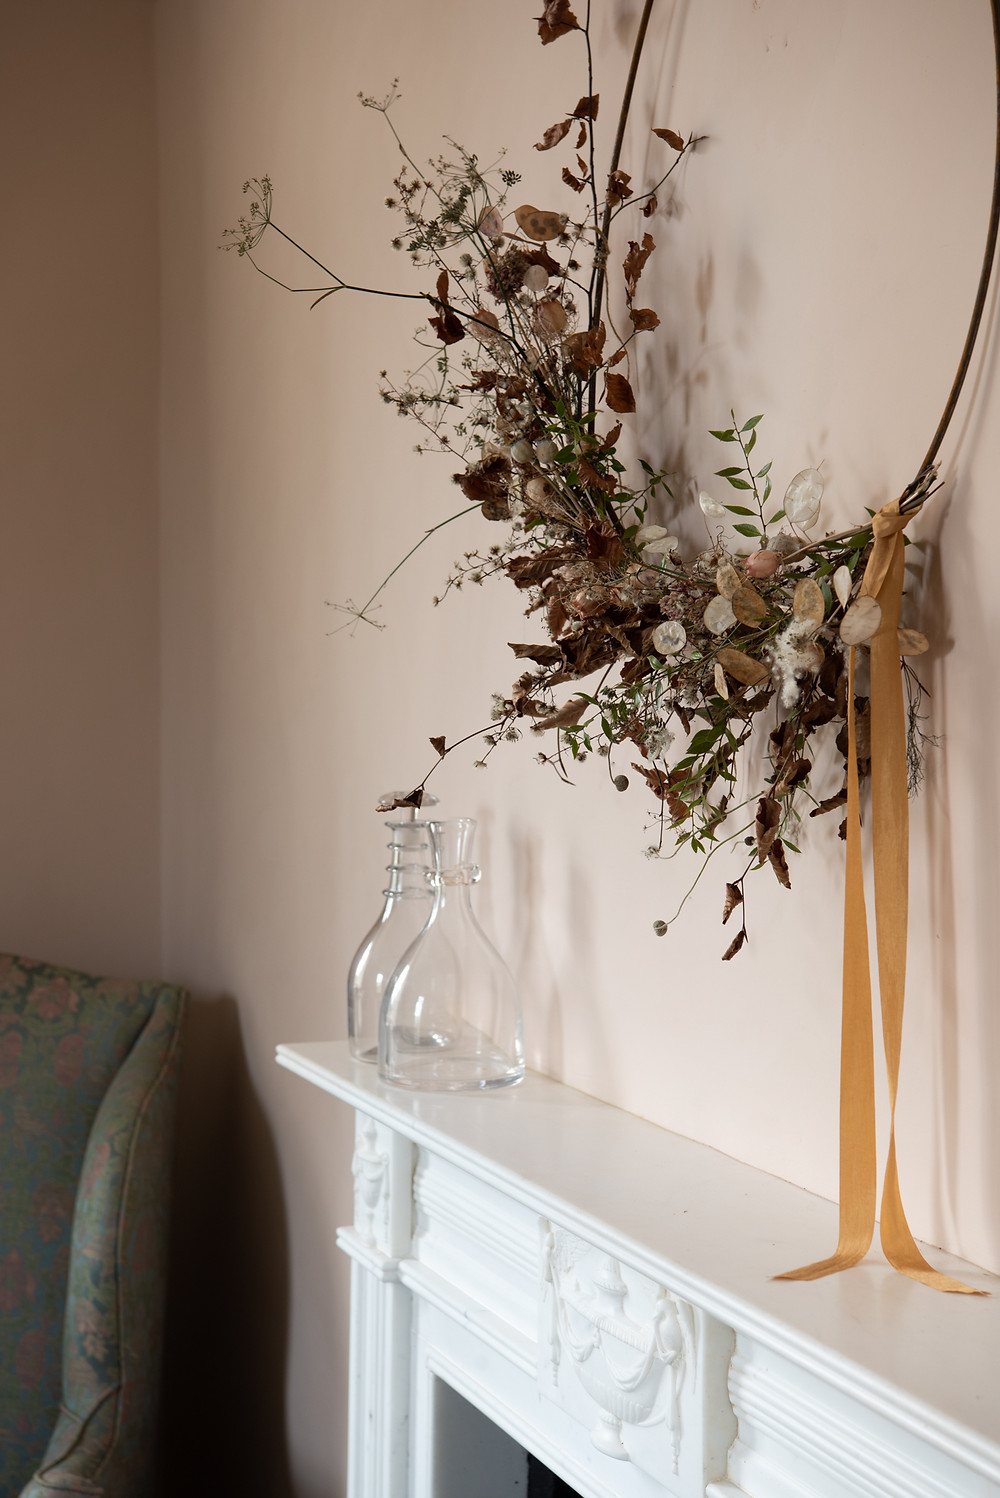 a wreath made with foraged seed heads and twigs hanging above the fire place